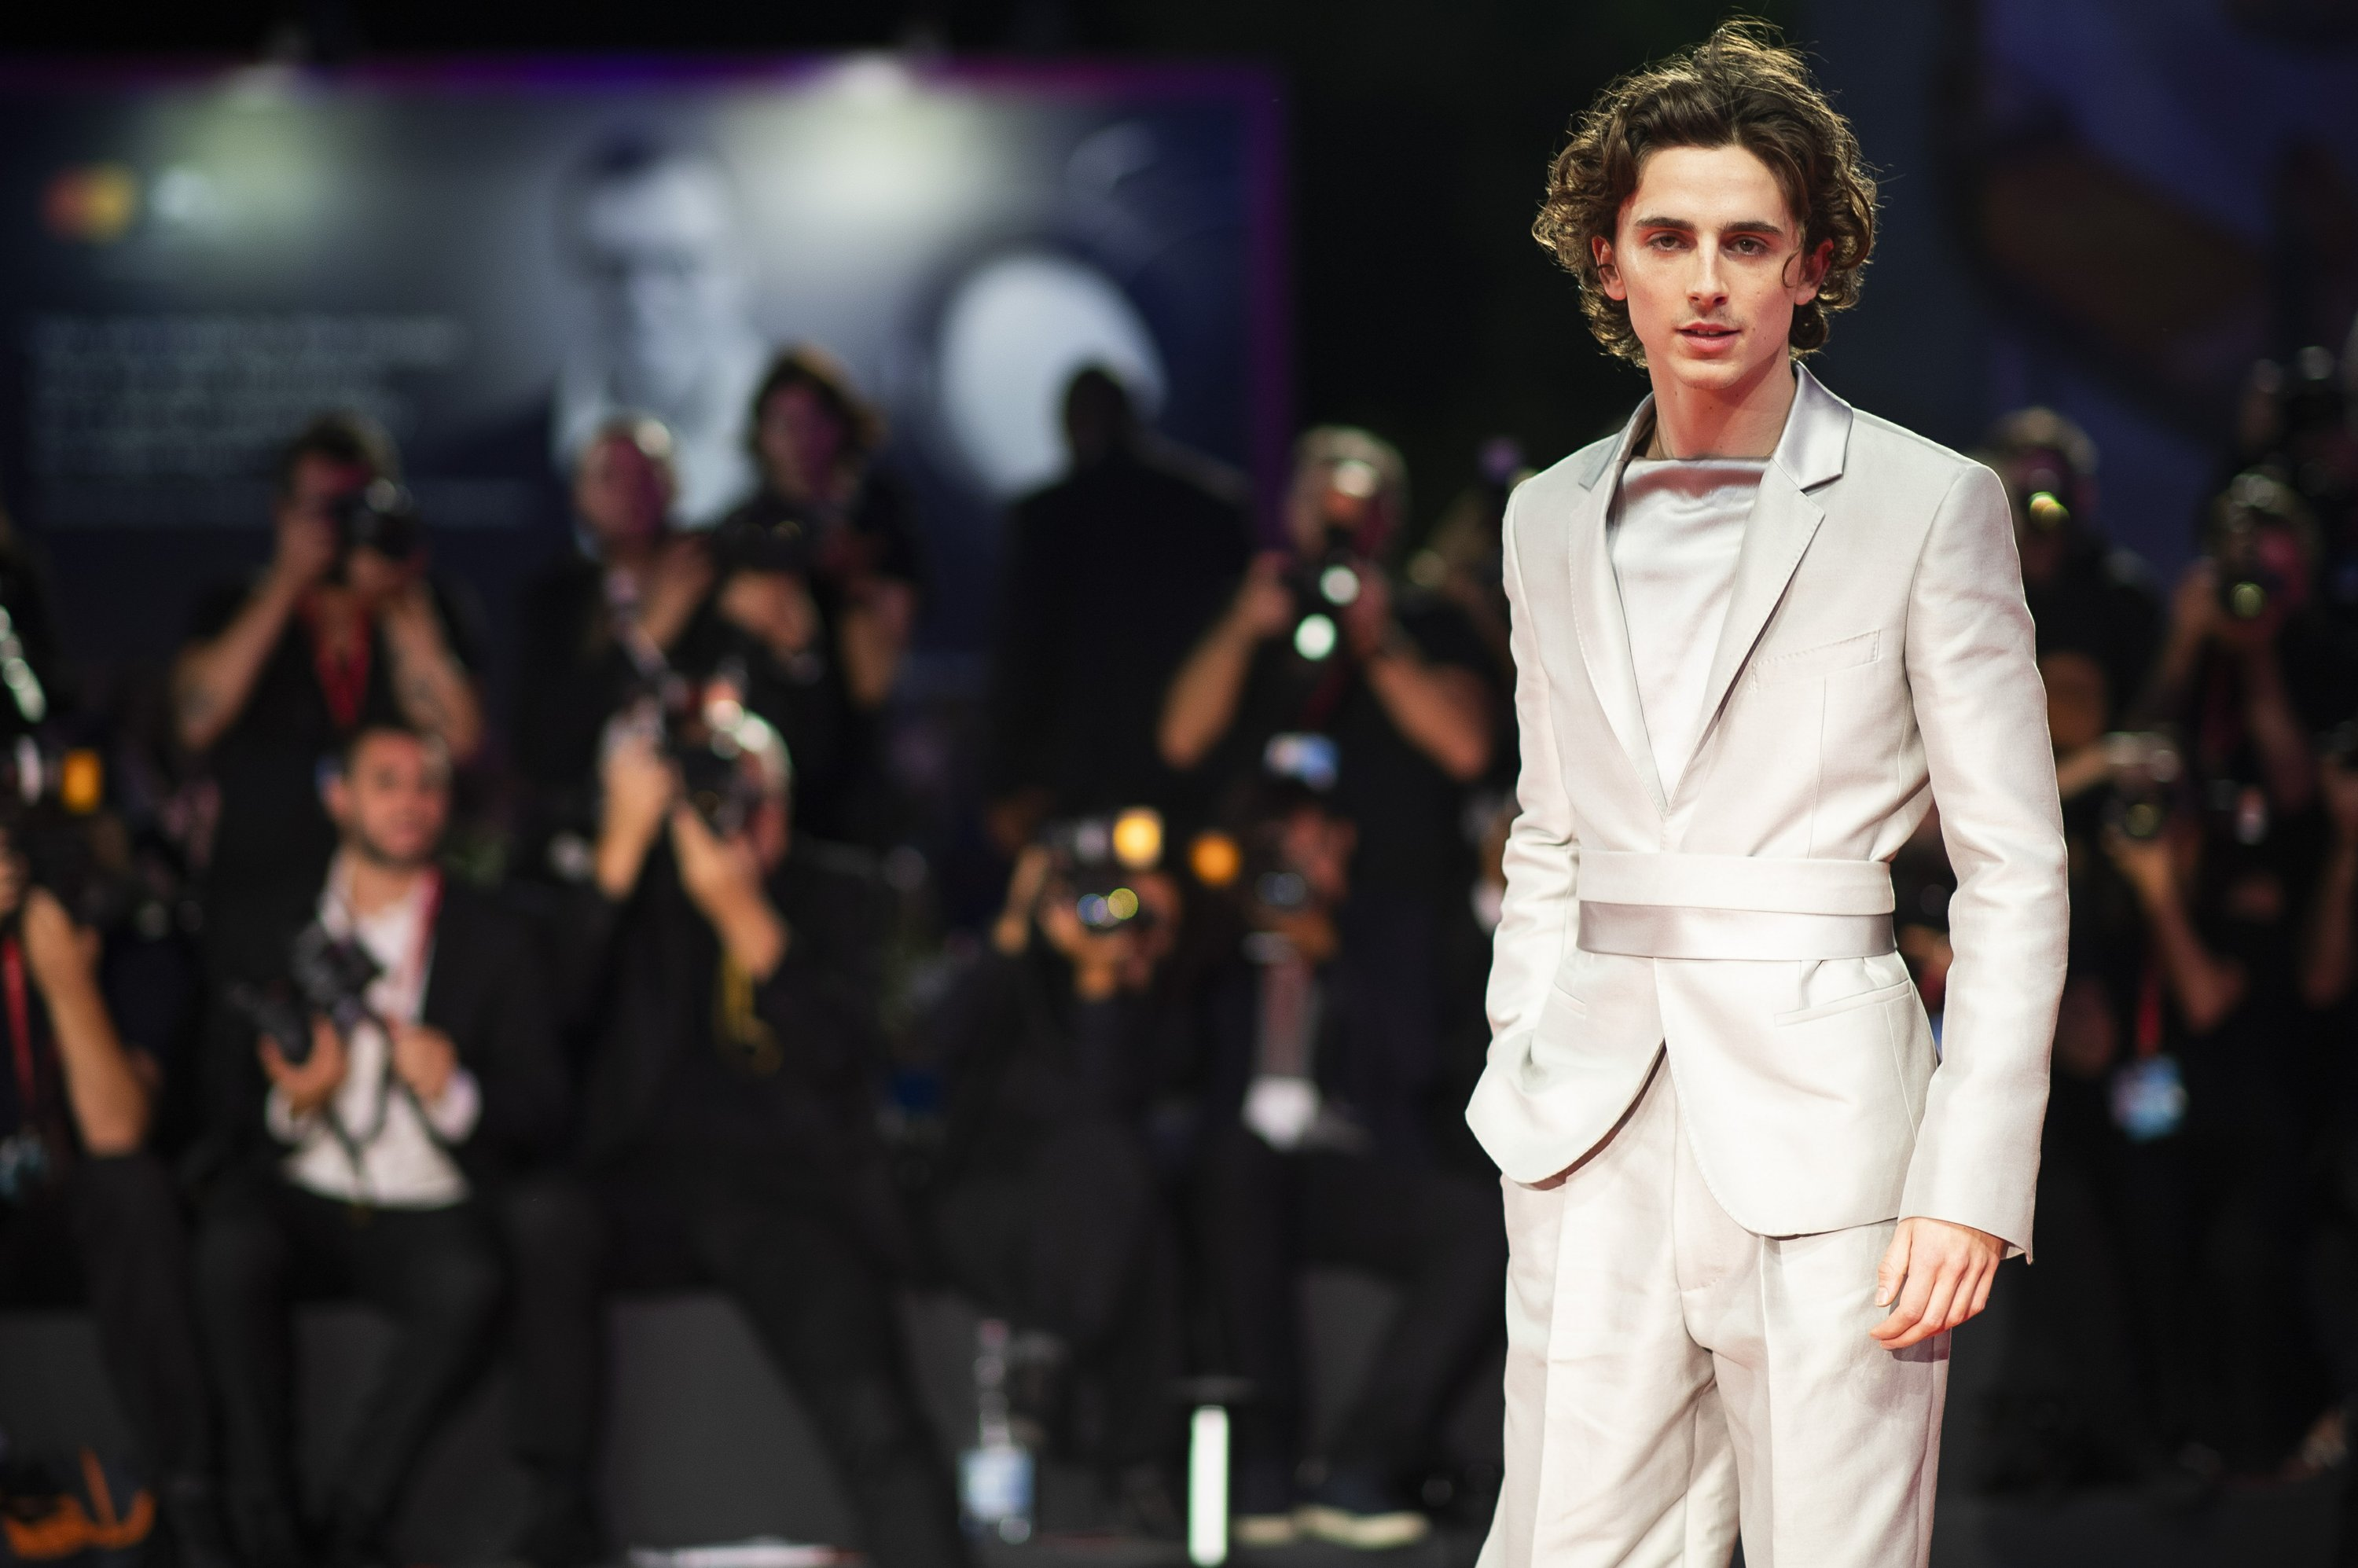 Timothee Chalamet Makes A Big Impression In Venice